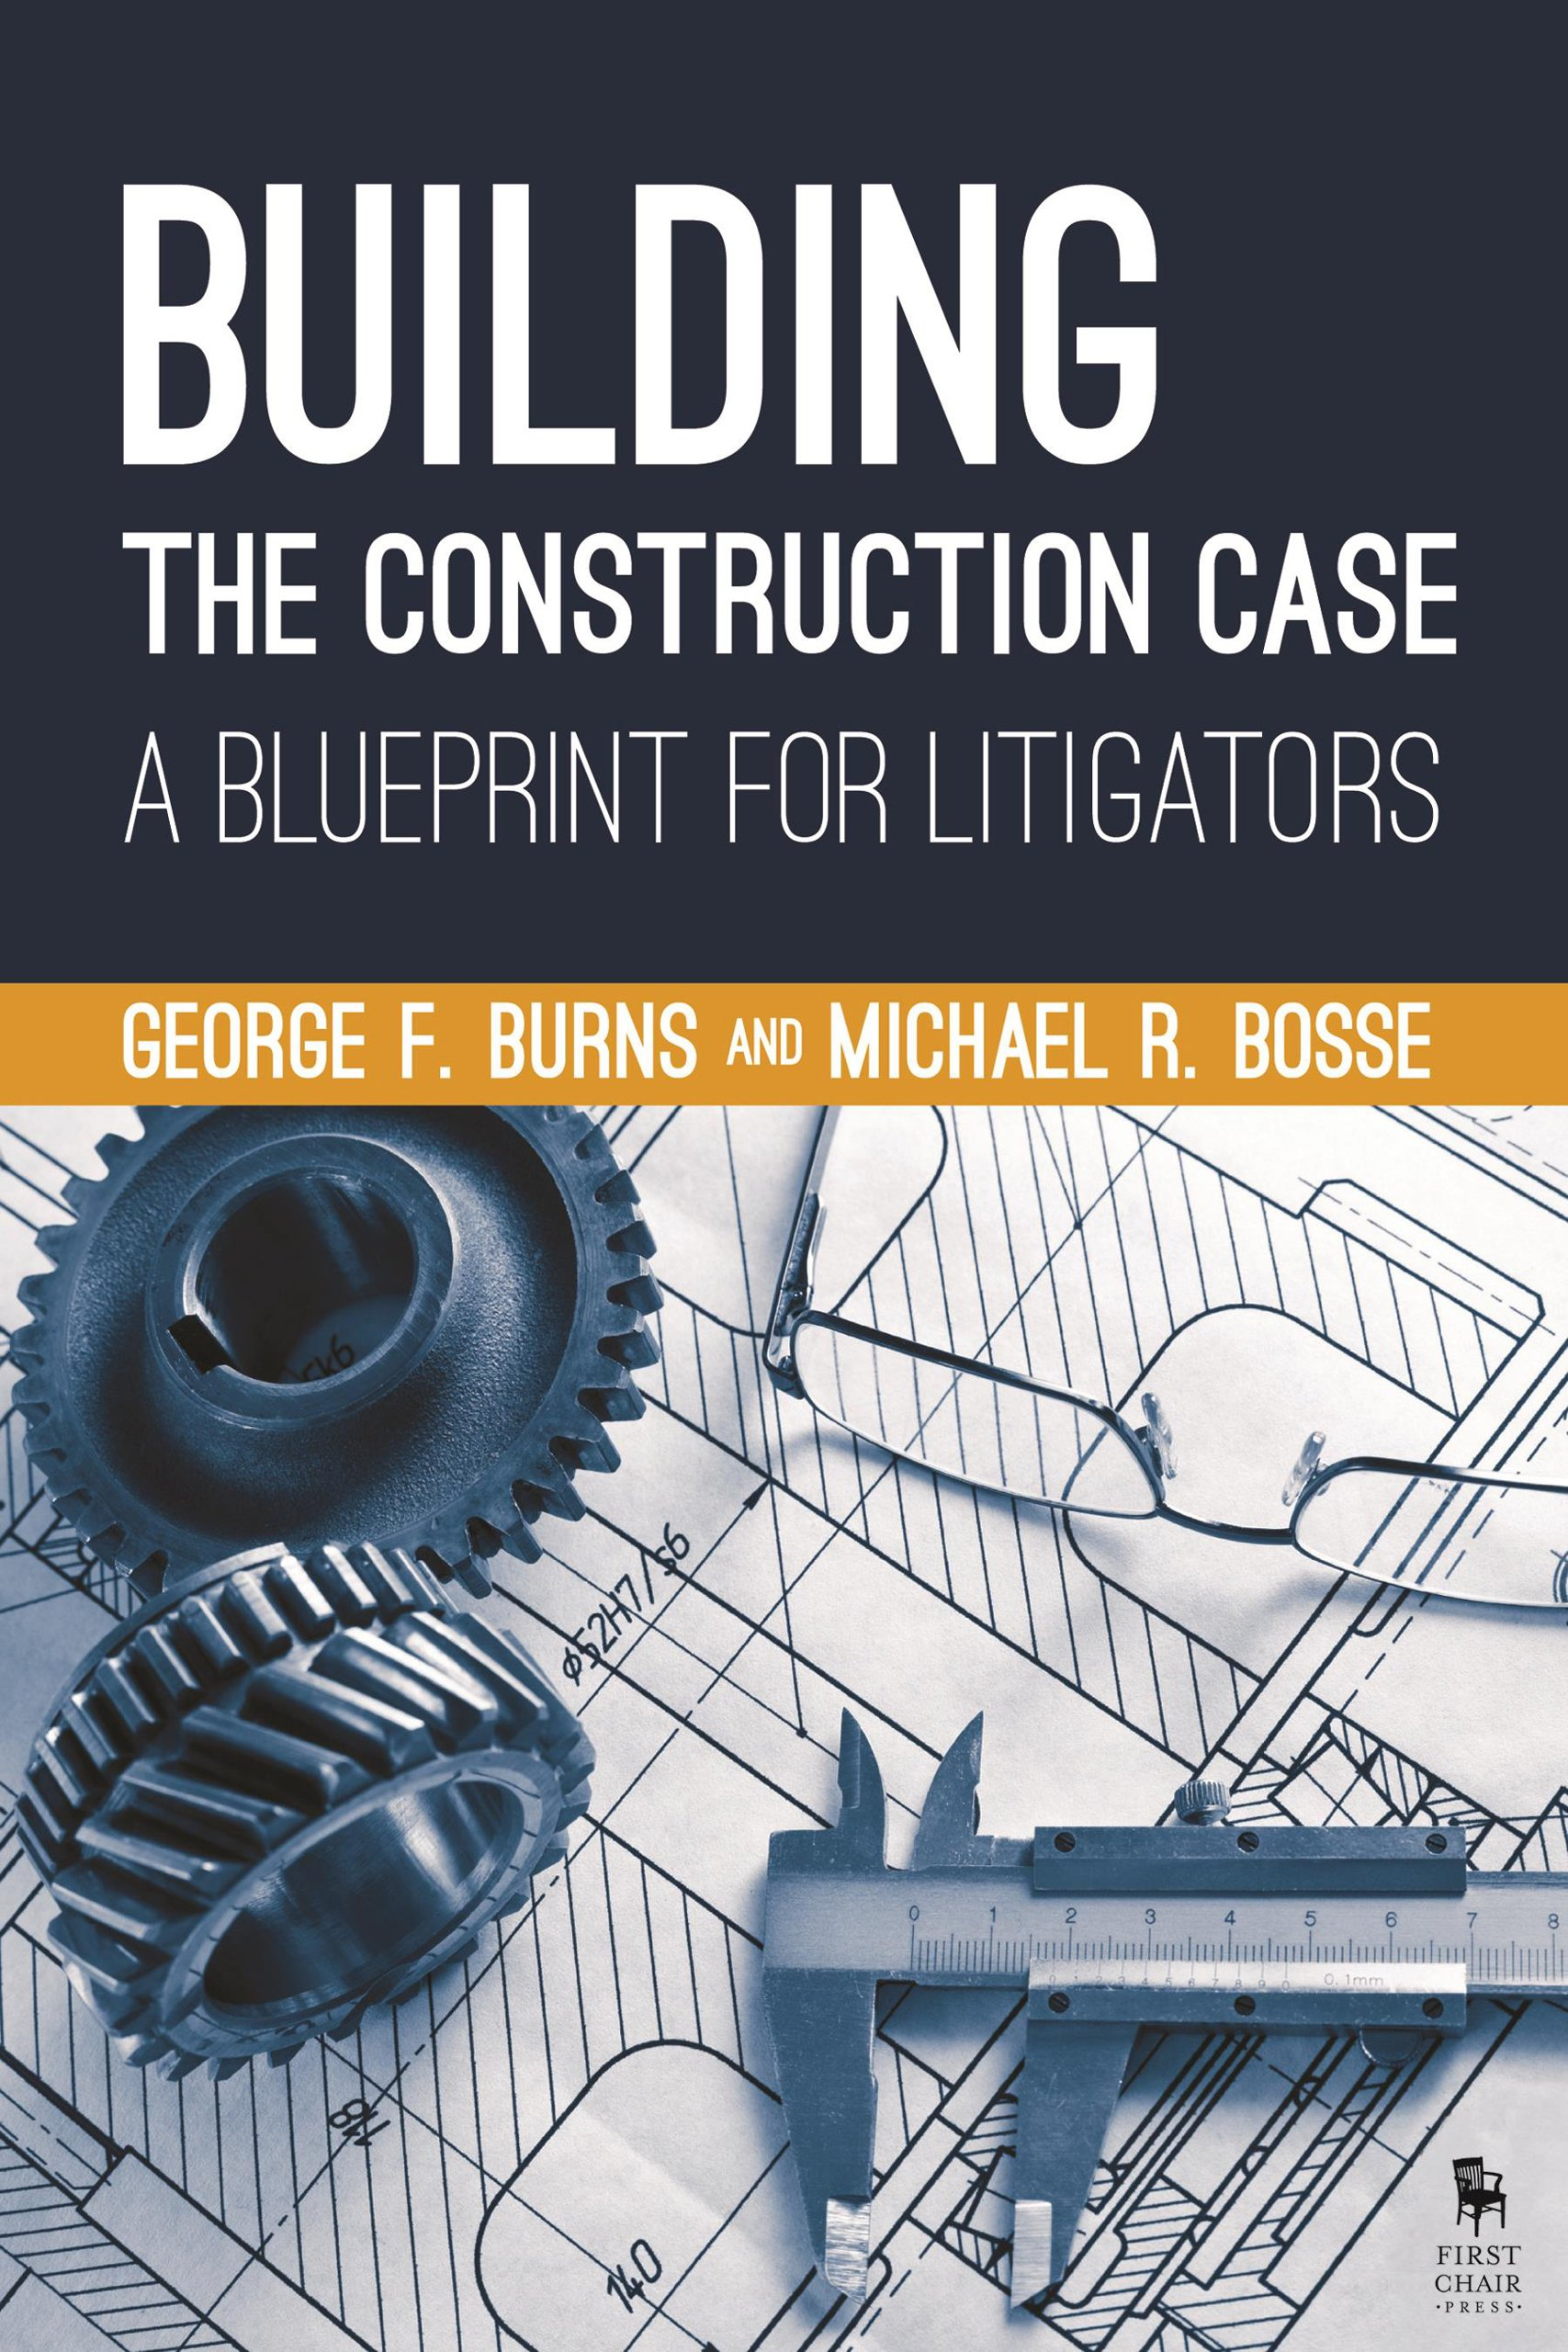 Building the construction case a blueprint for litigators george f building the construction case a blueprint for litigators george f burns michael r bosse 9781627226998 amazon books malvernweather Images